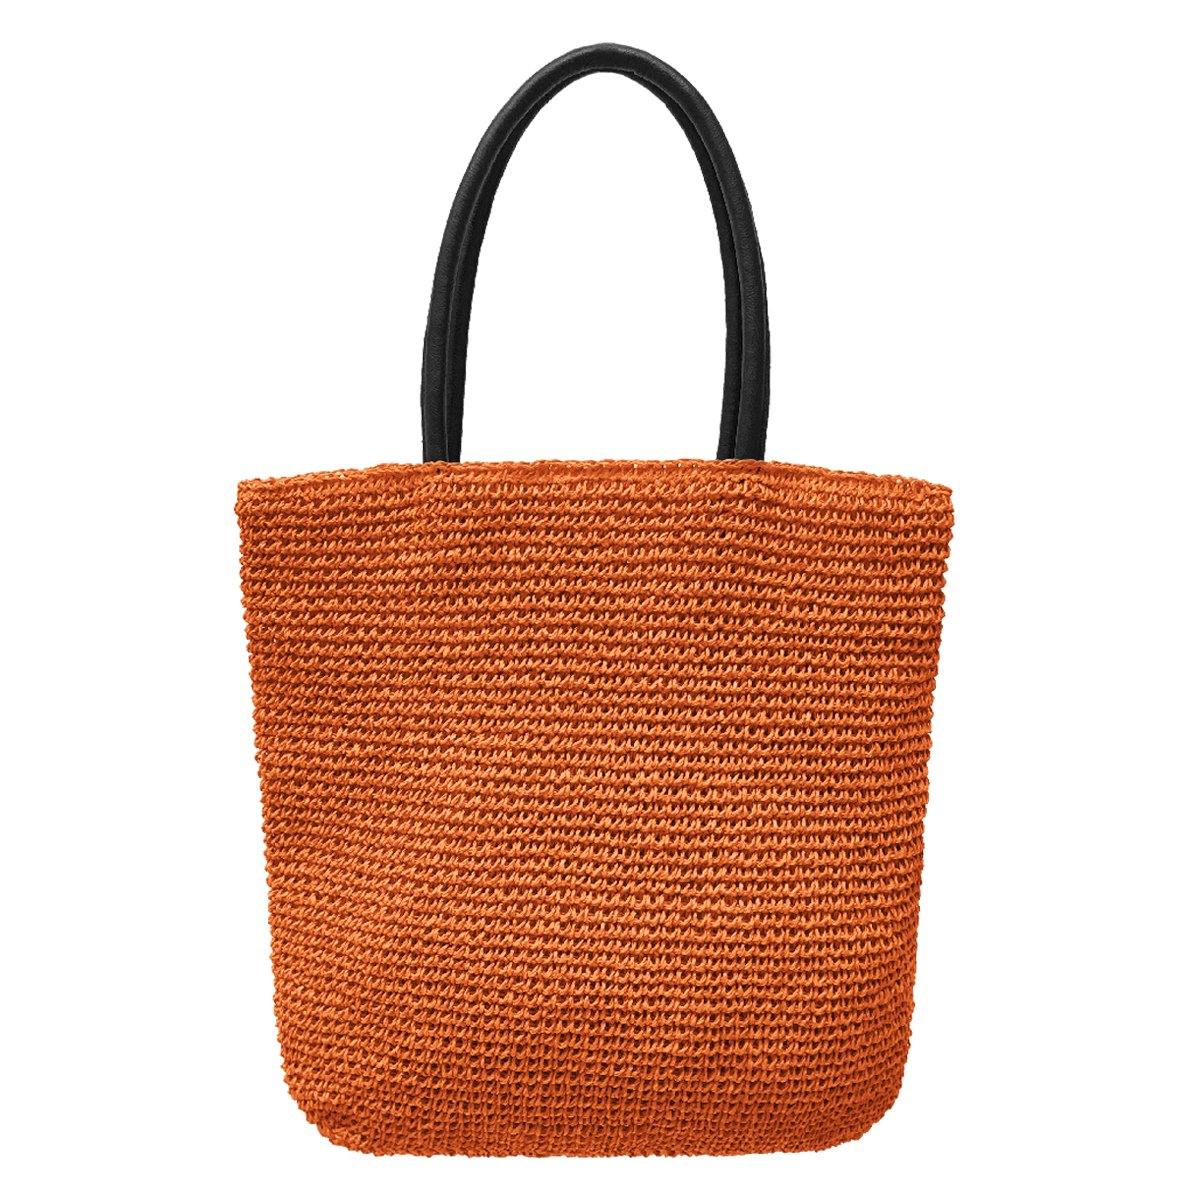 Crochet Tote Bag by Bambou, Fashion Purse Women, Beach Bag, Ladies Shopping Bag, 100% Recycled Material (Tiger)